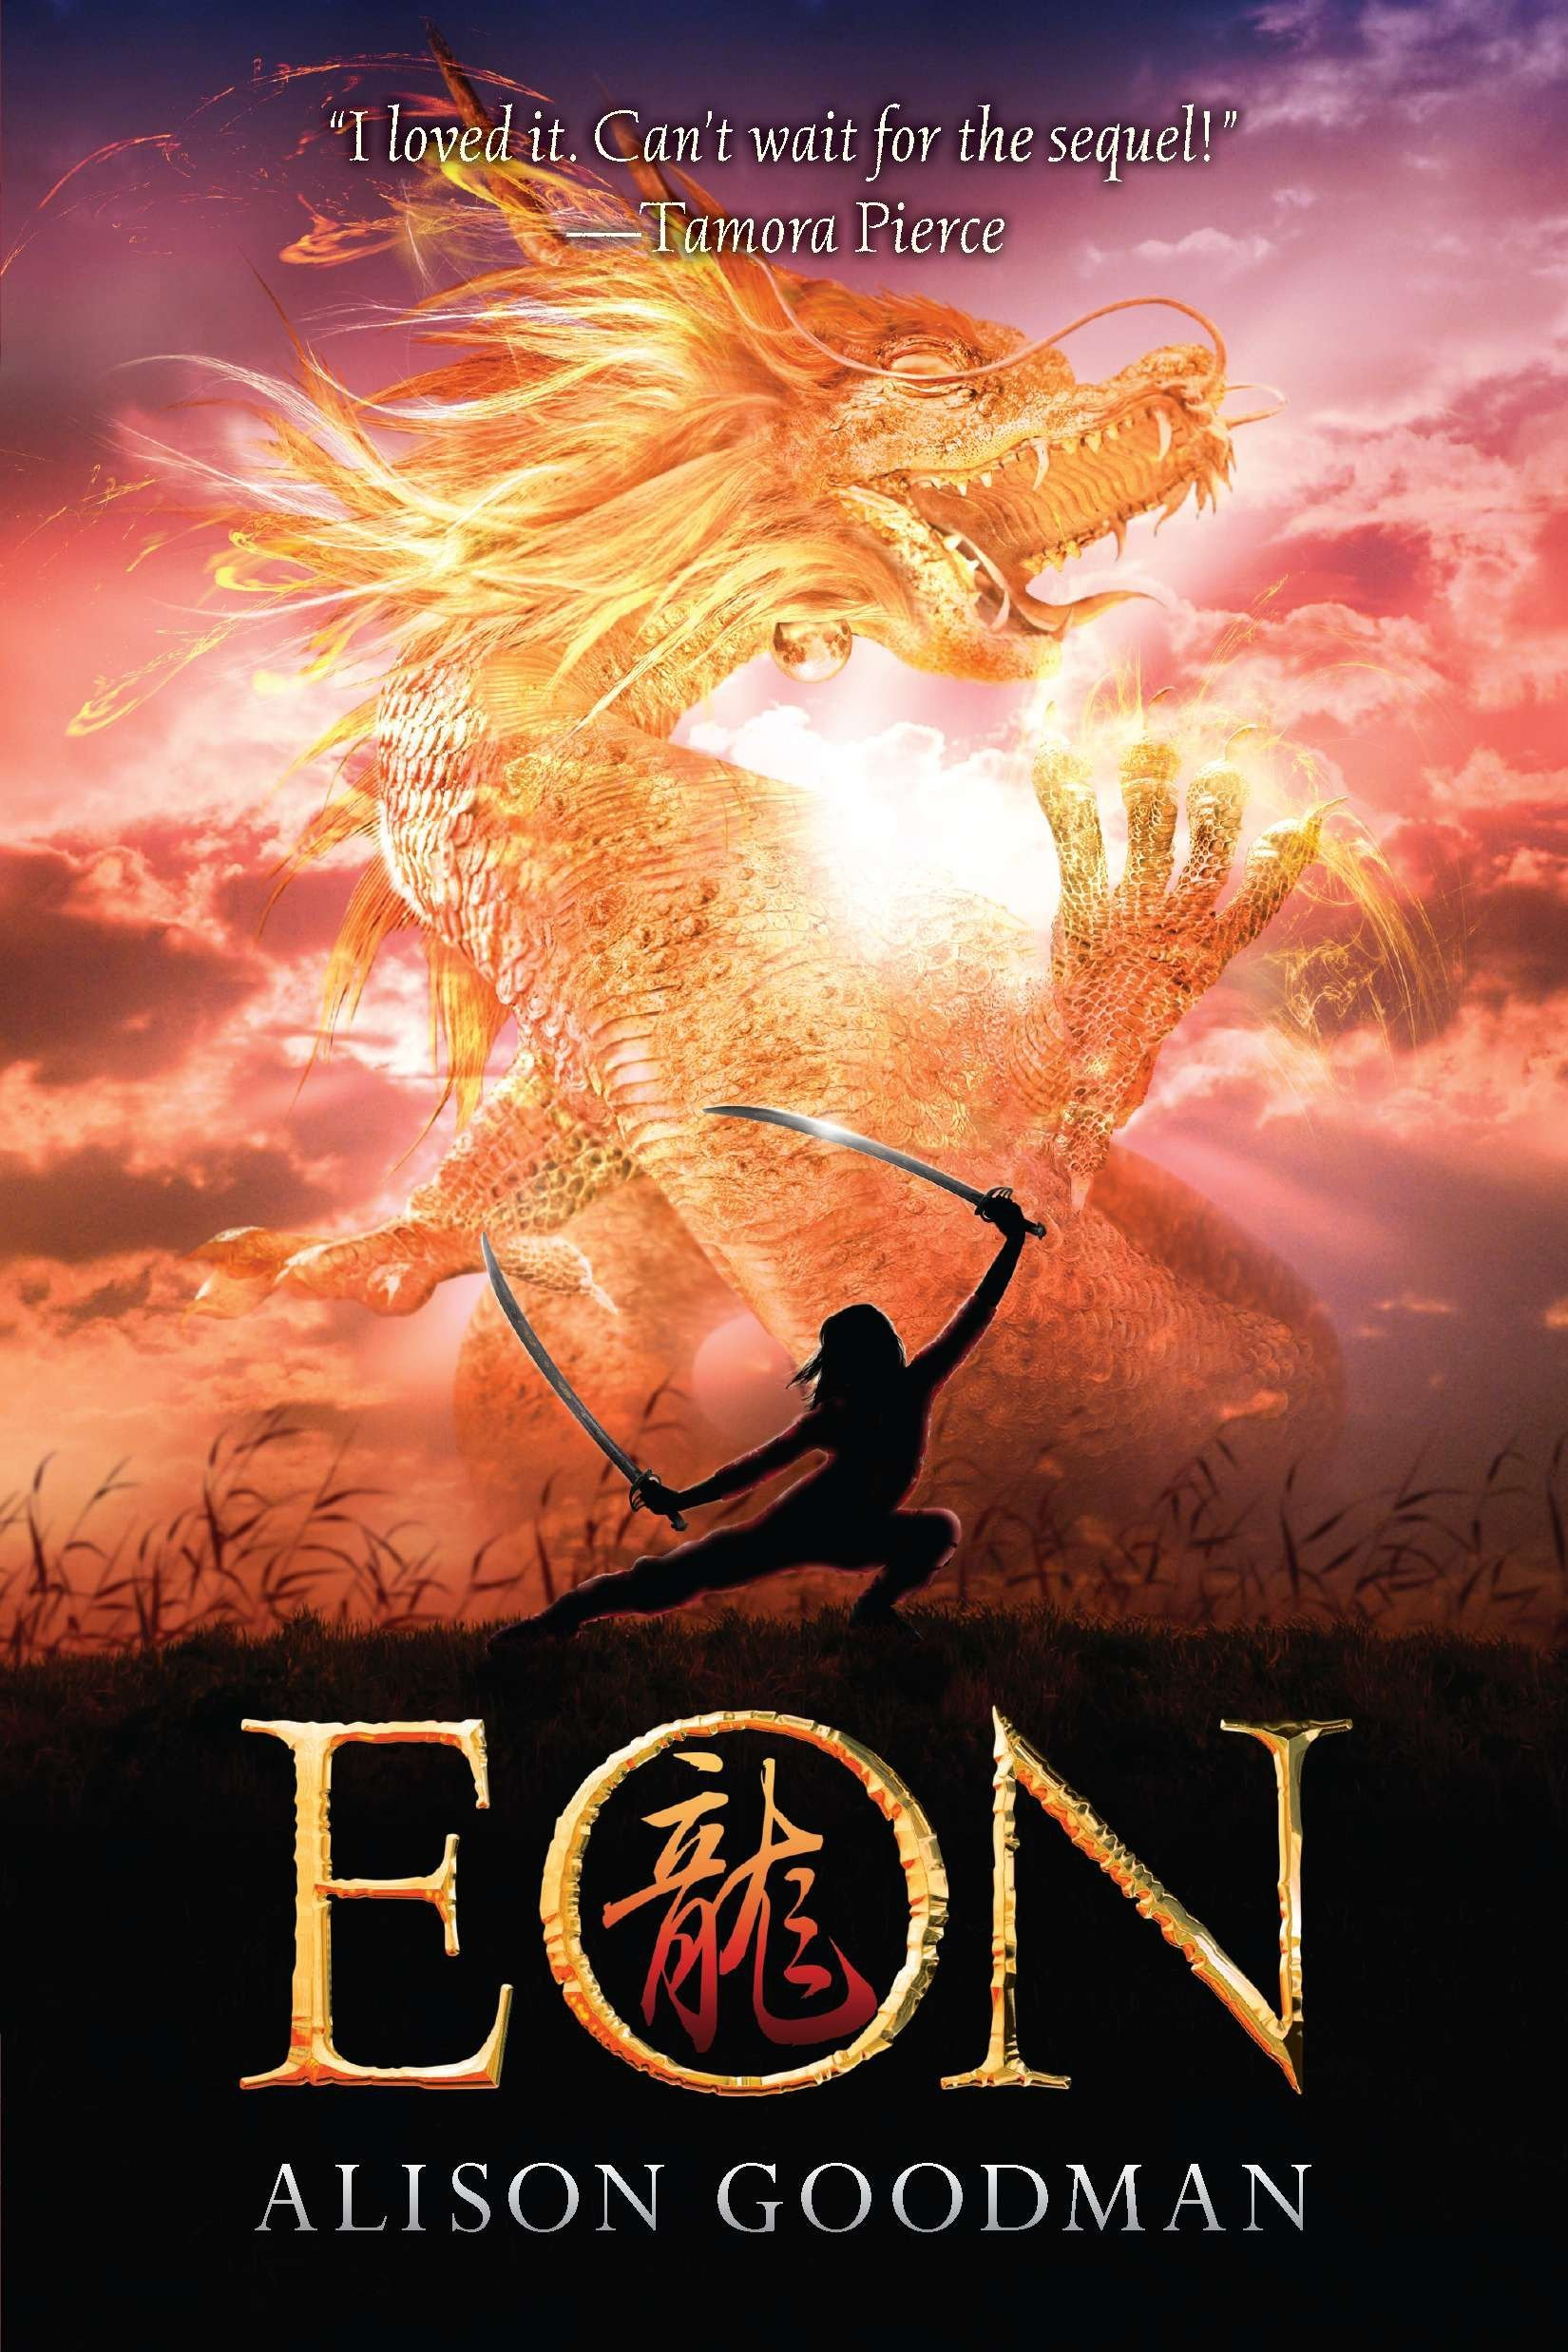 Alison Goodman - YA fantasy books about dragons for adults